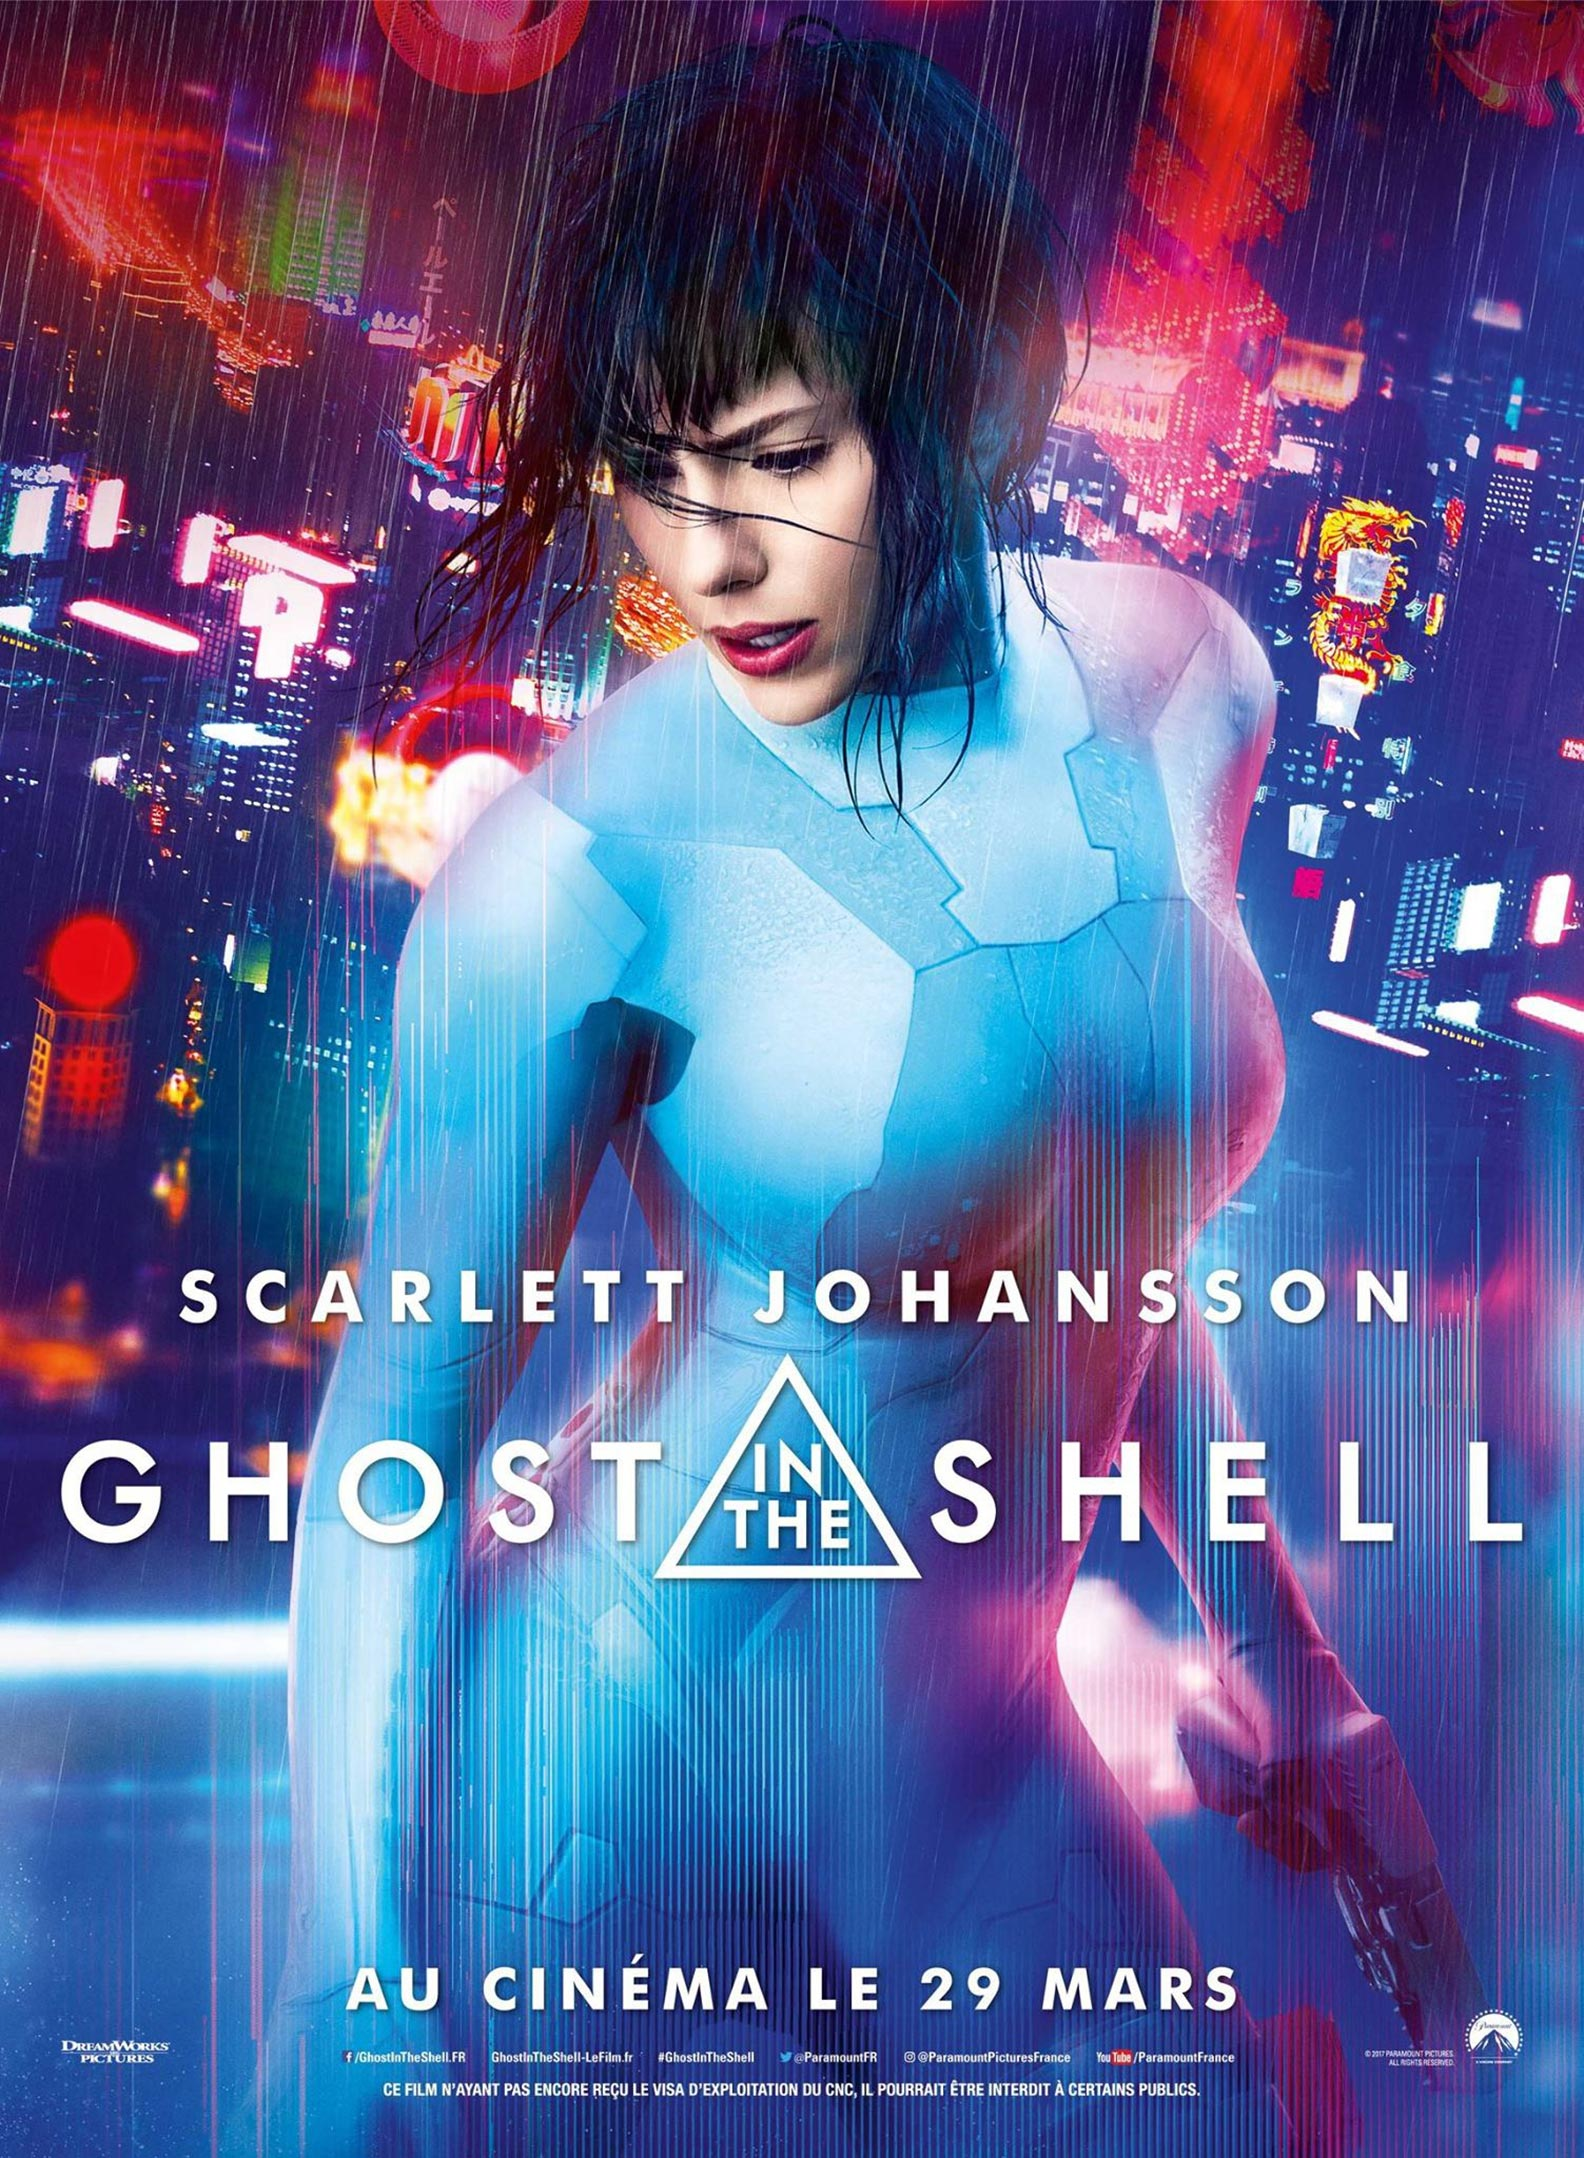 ghost-in-the-shell-poster-8